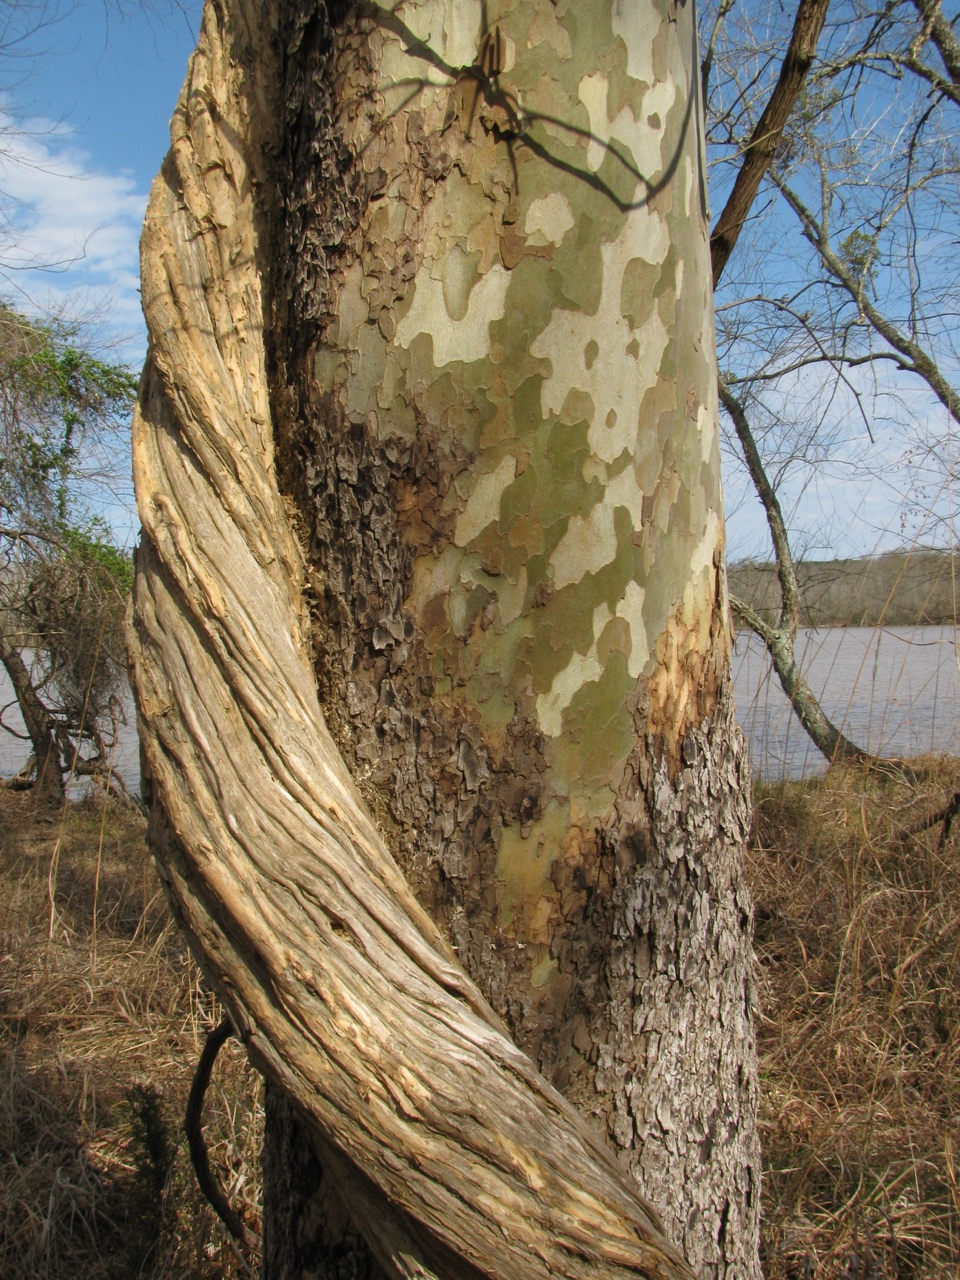 The Scientific Name is Platanus occidentalis. You will likely hear them called American Sycamore. This picture shows the Transition of bark on lower trunk to the mottled patchwork of colors of the inner bark. of Platanus occidentalis